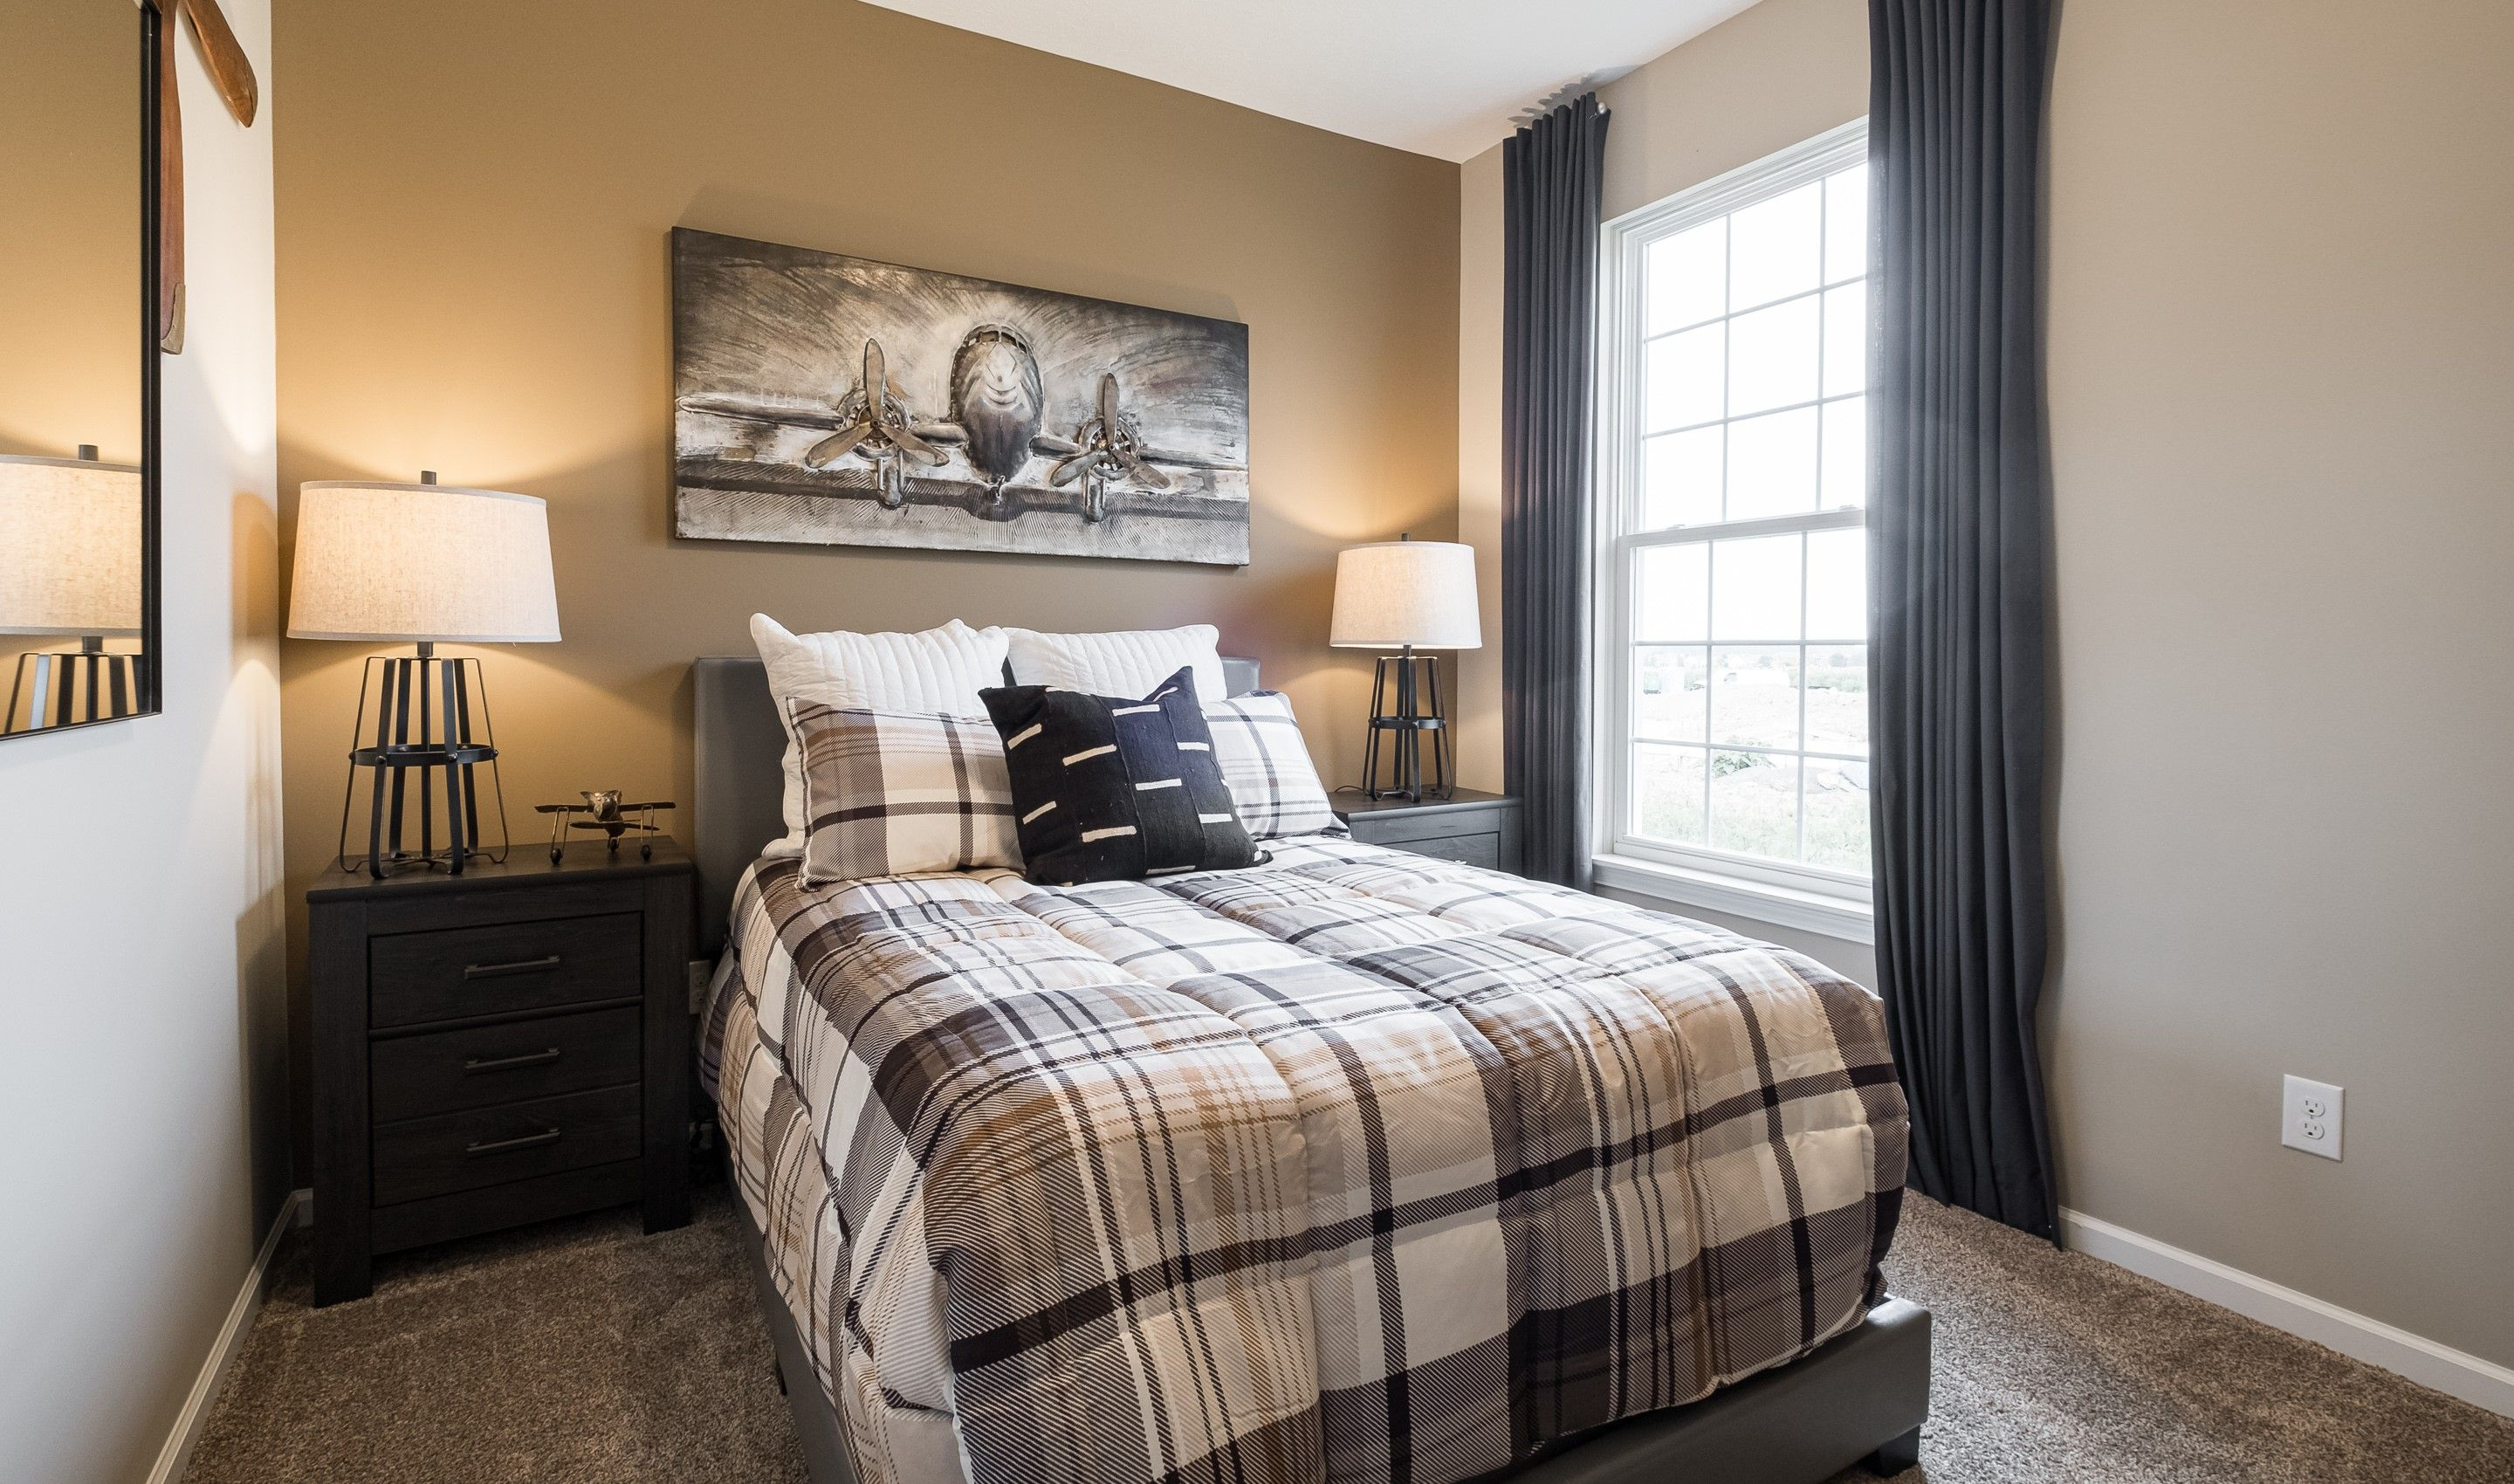 Bedroom featured in the Barclay By K. Hovnanian's® Four Seasons in Cleveland, OH